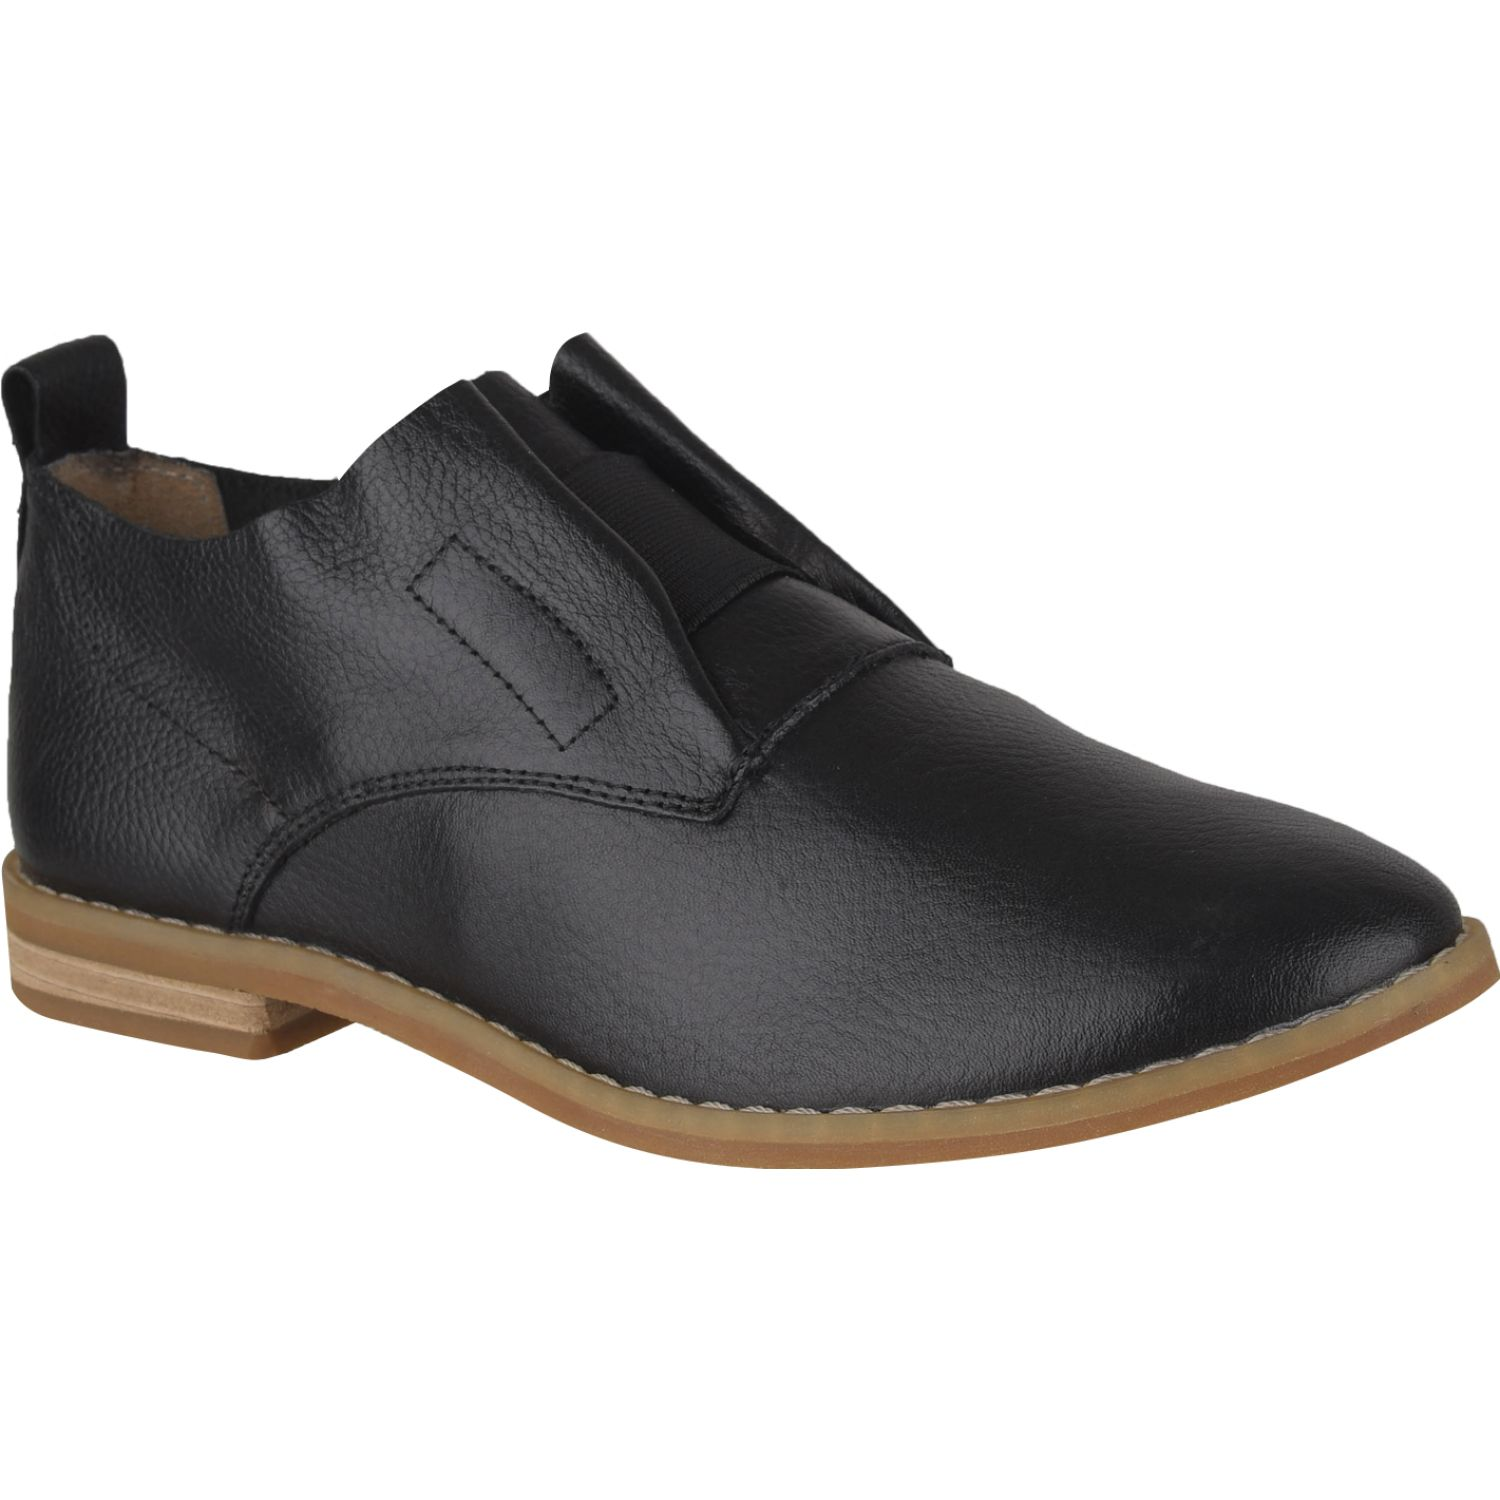 Hush Puppies annerley clever Negro Oxfords